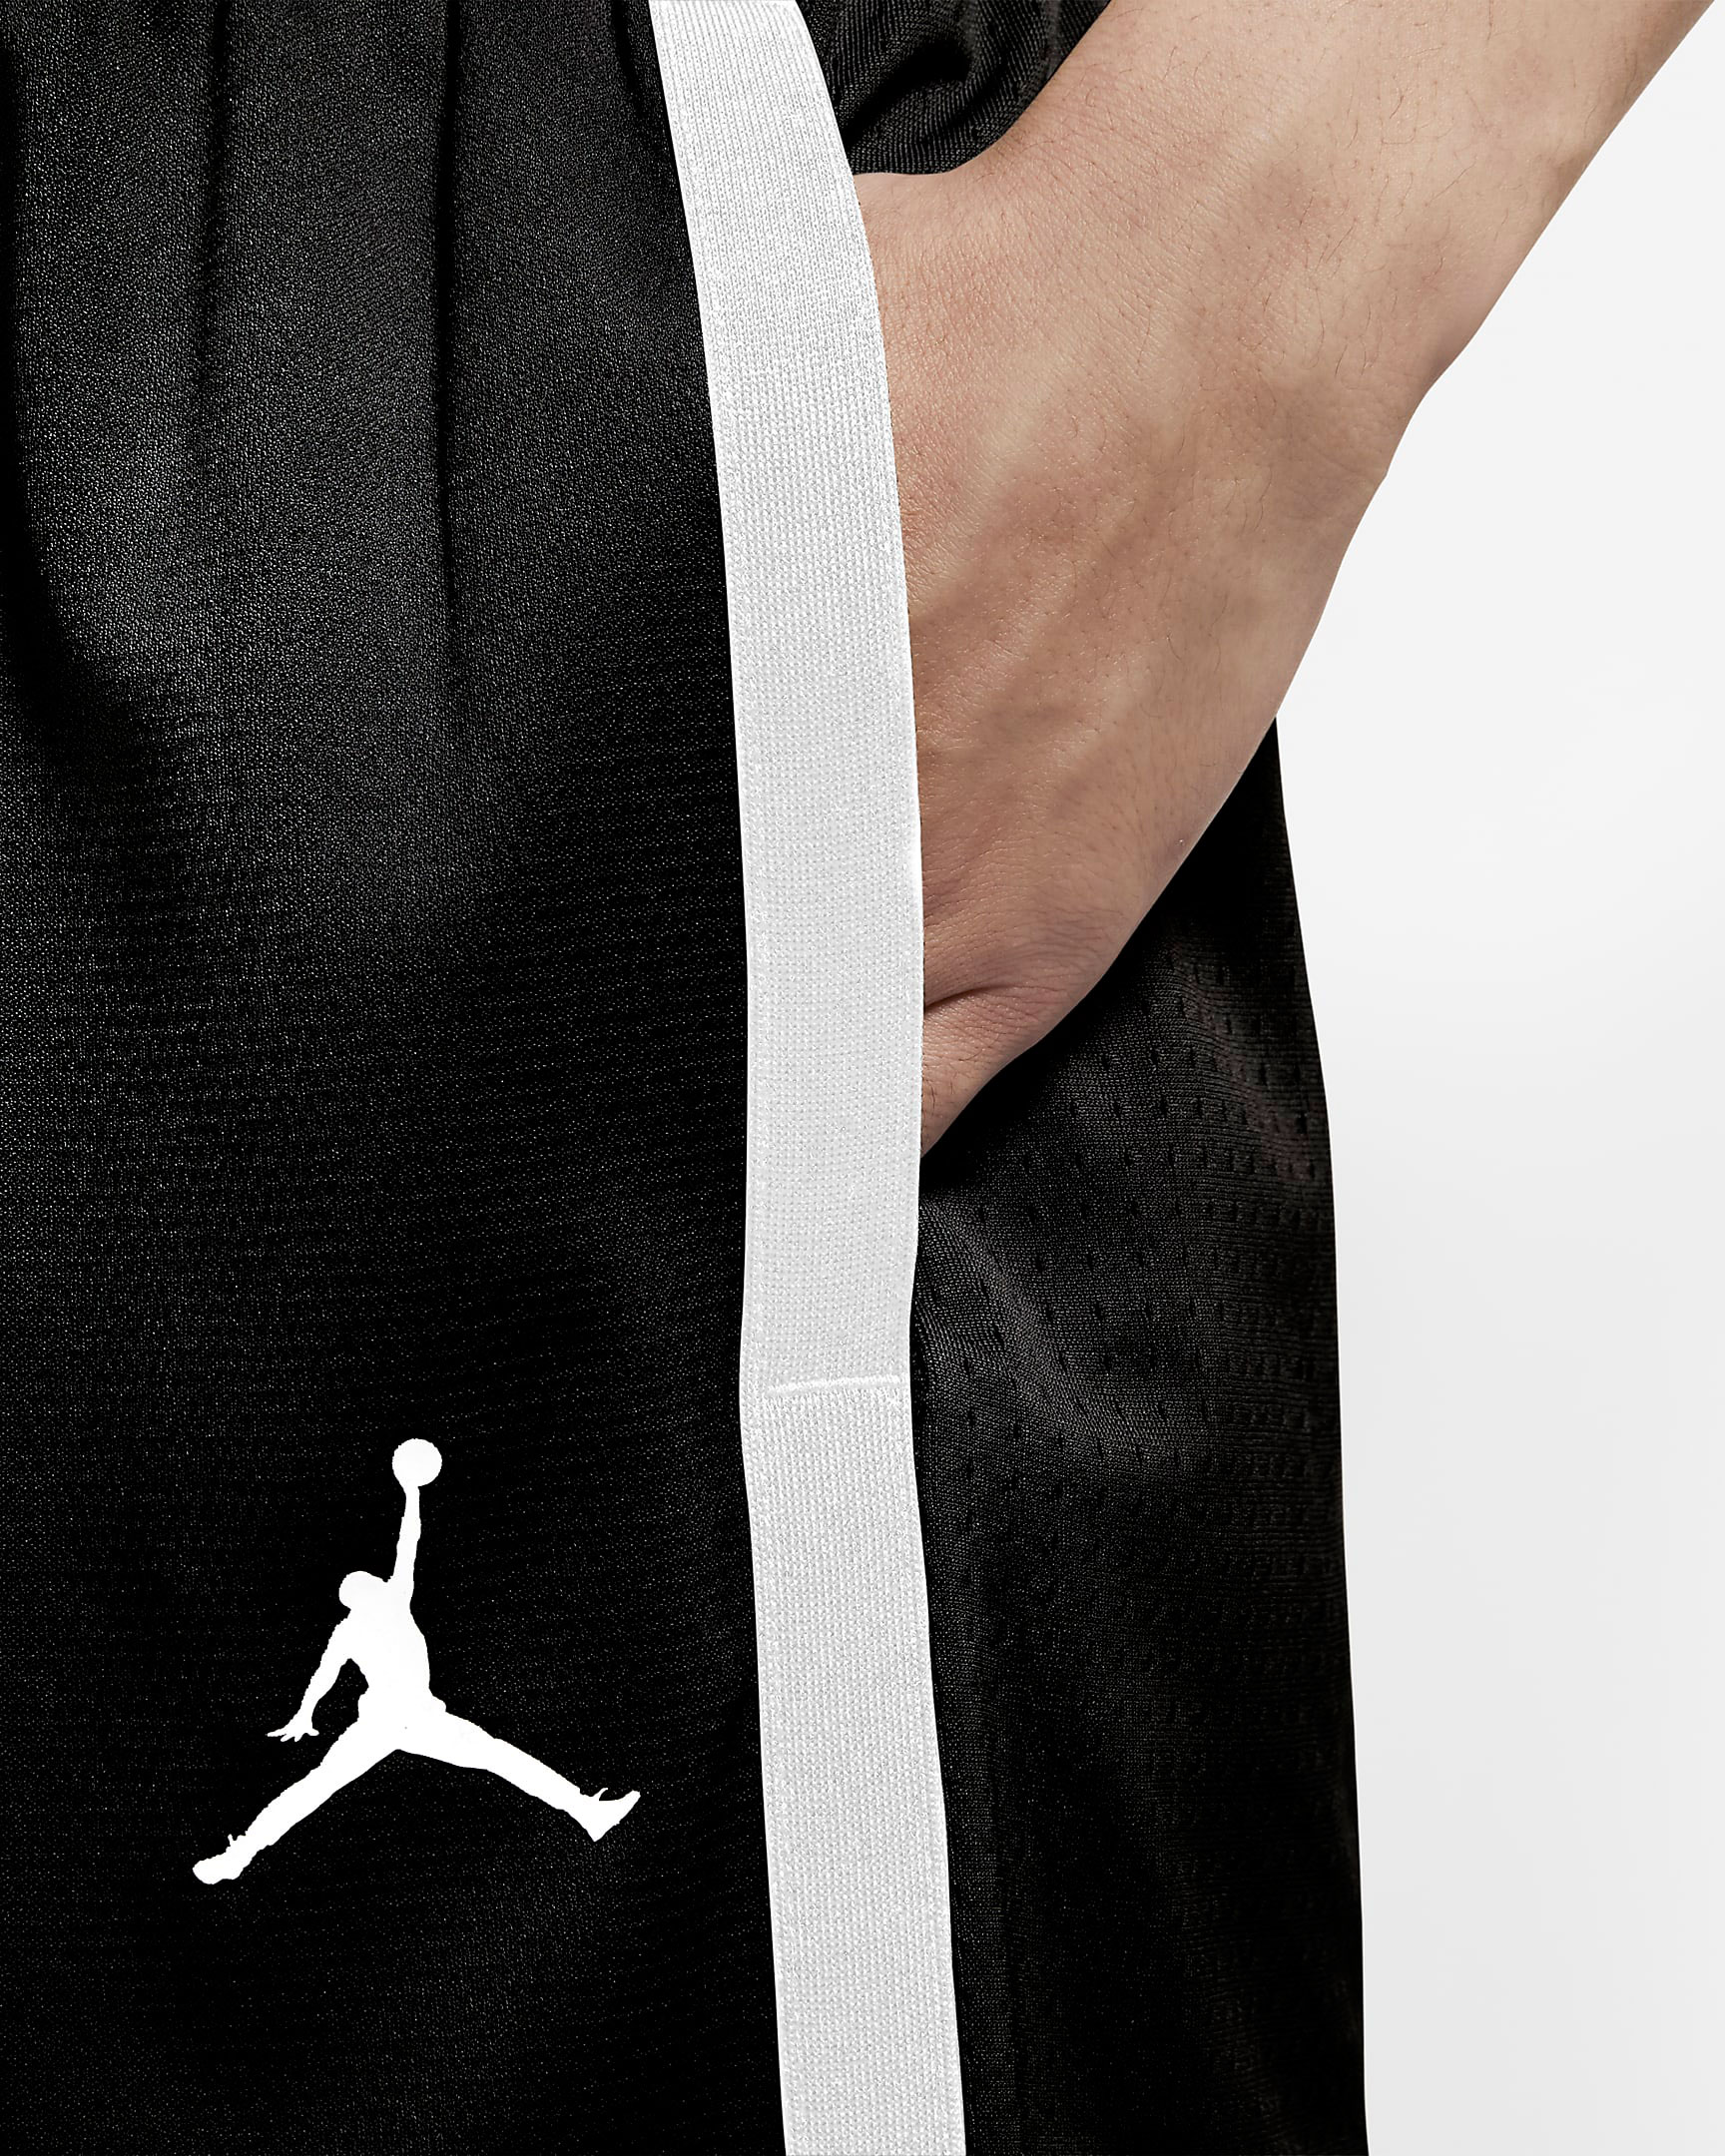 air-jordan-11-jubilee-black-white-jordan-shorts-3